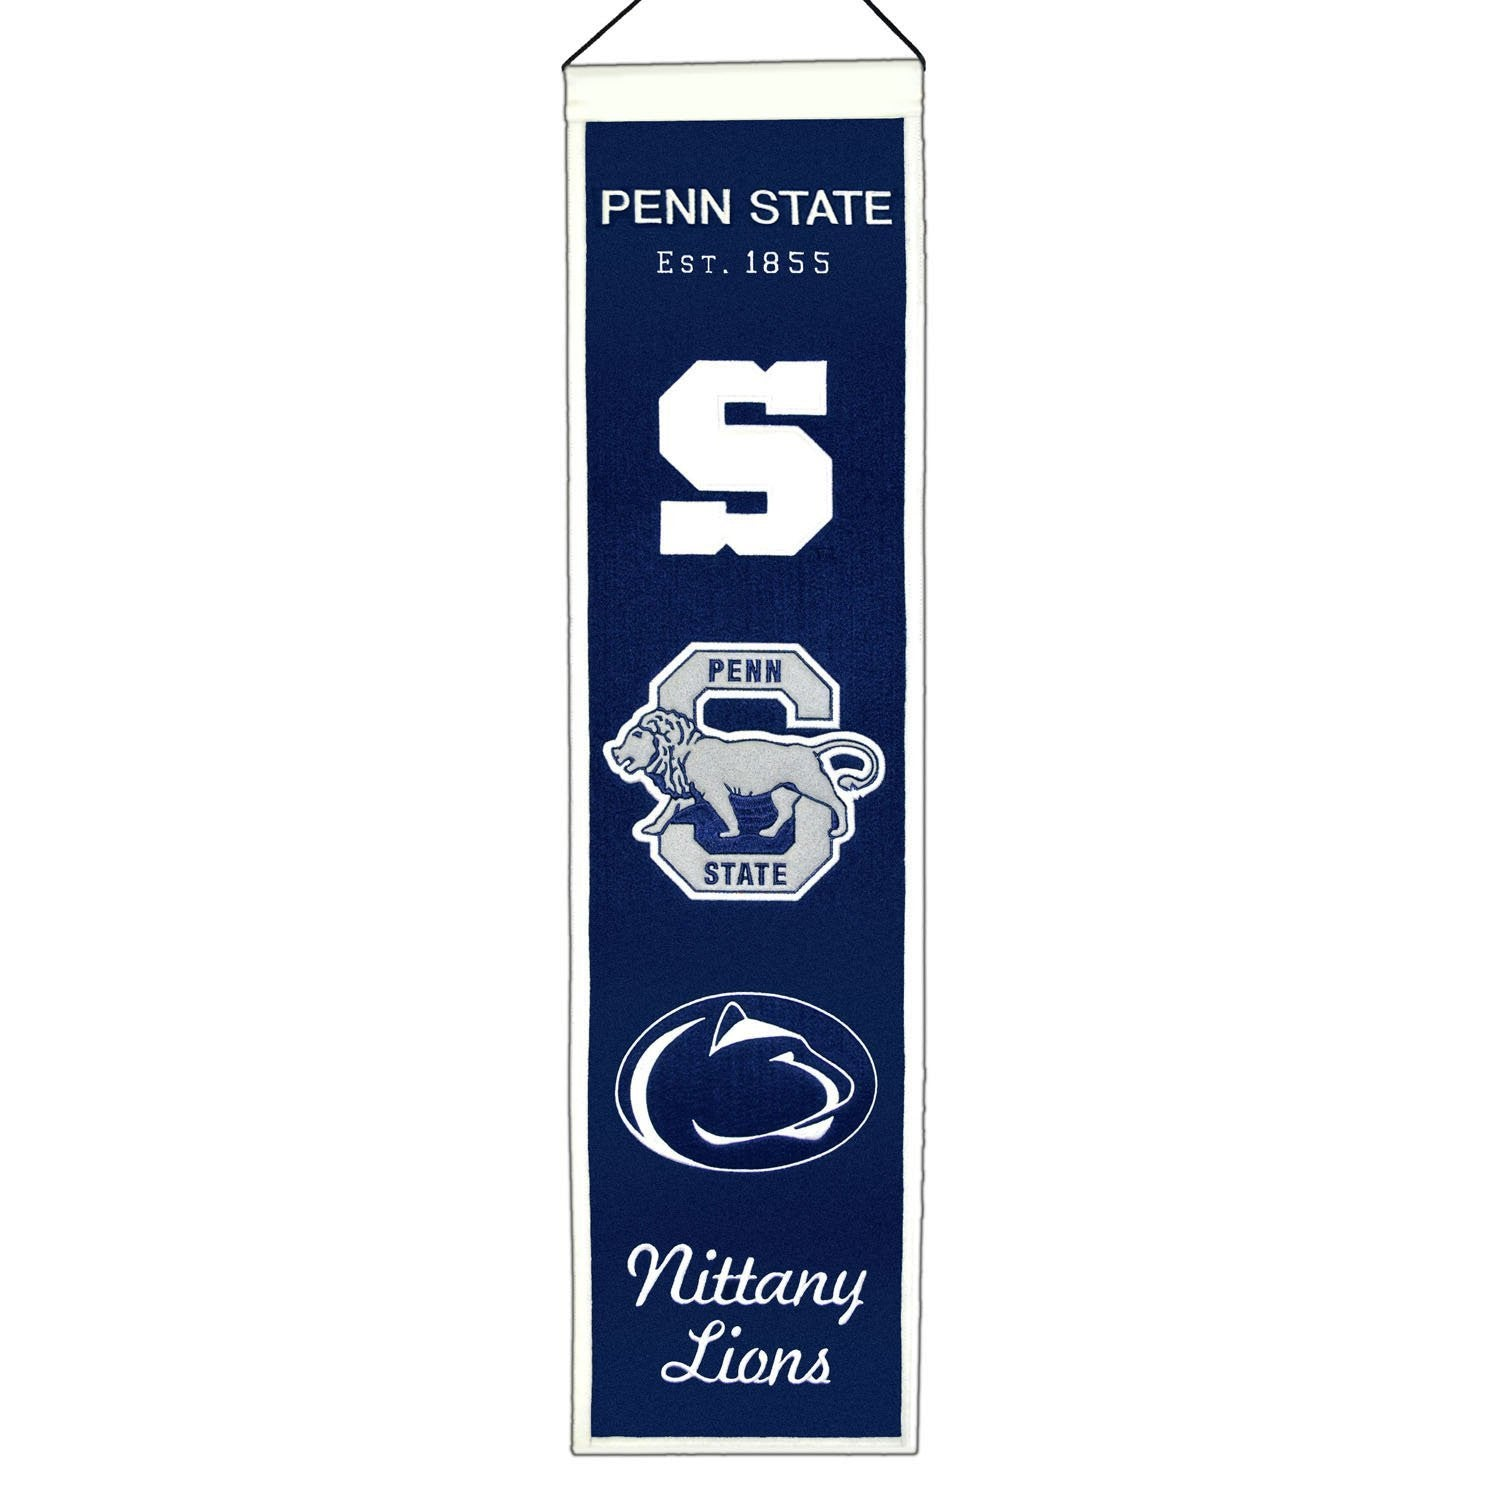 Penn State Nittany Lions NCAA College Heritage Banner | NCAA College ...